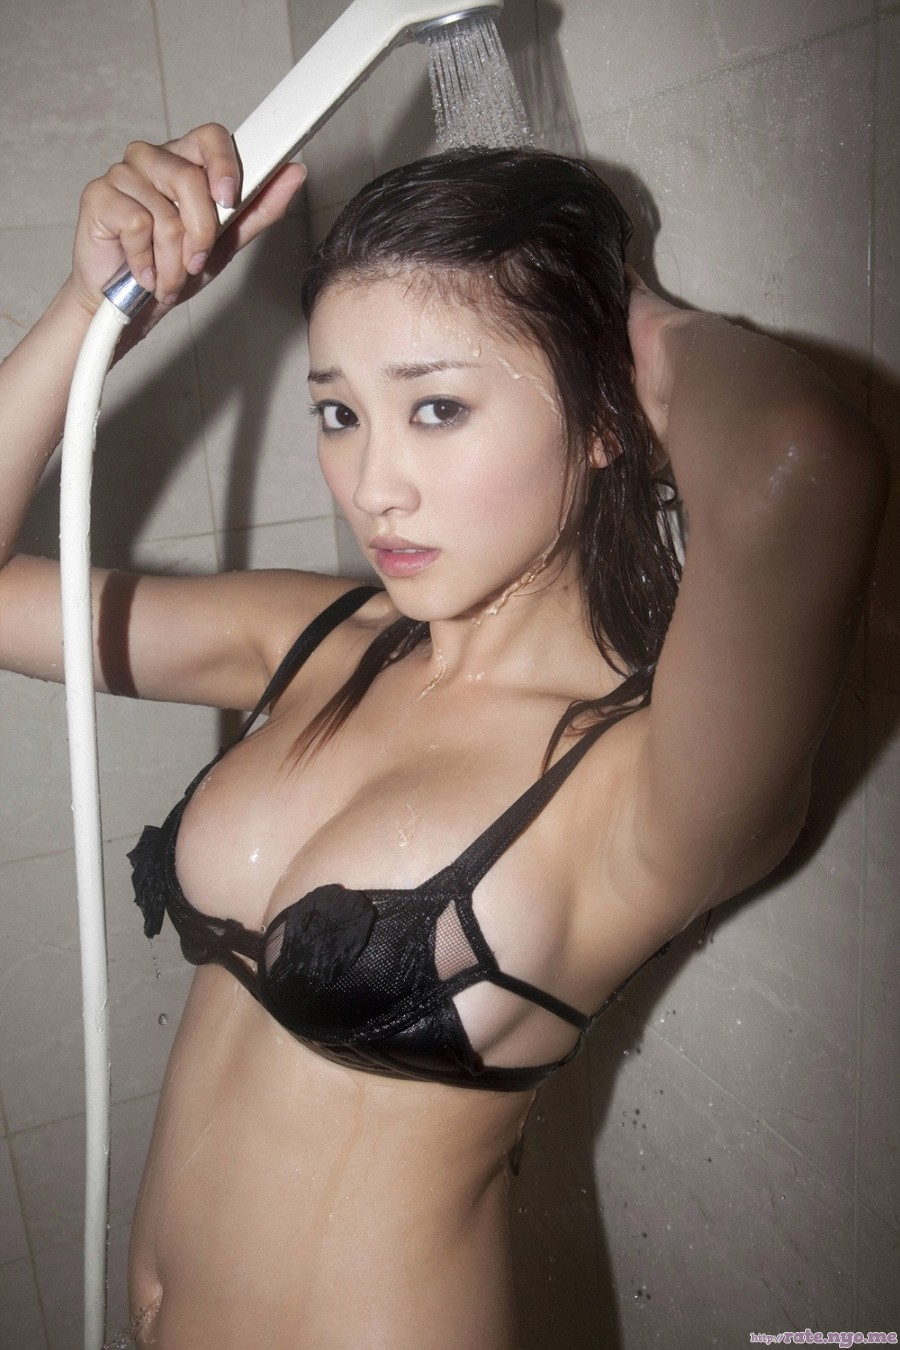 armpits bra breasts cleavage japanese midriff mikie_hara shoulders wet